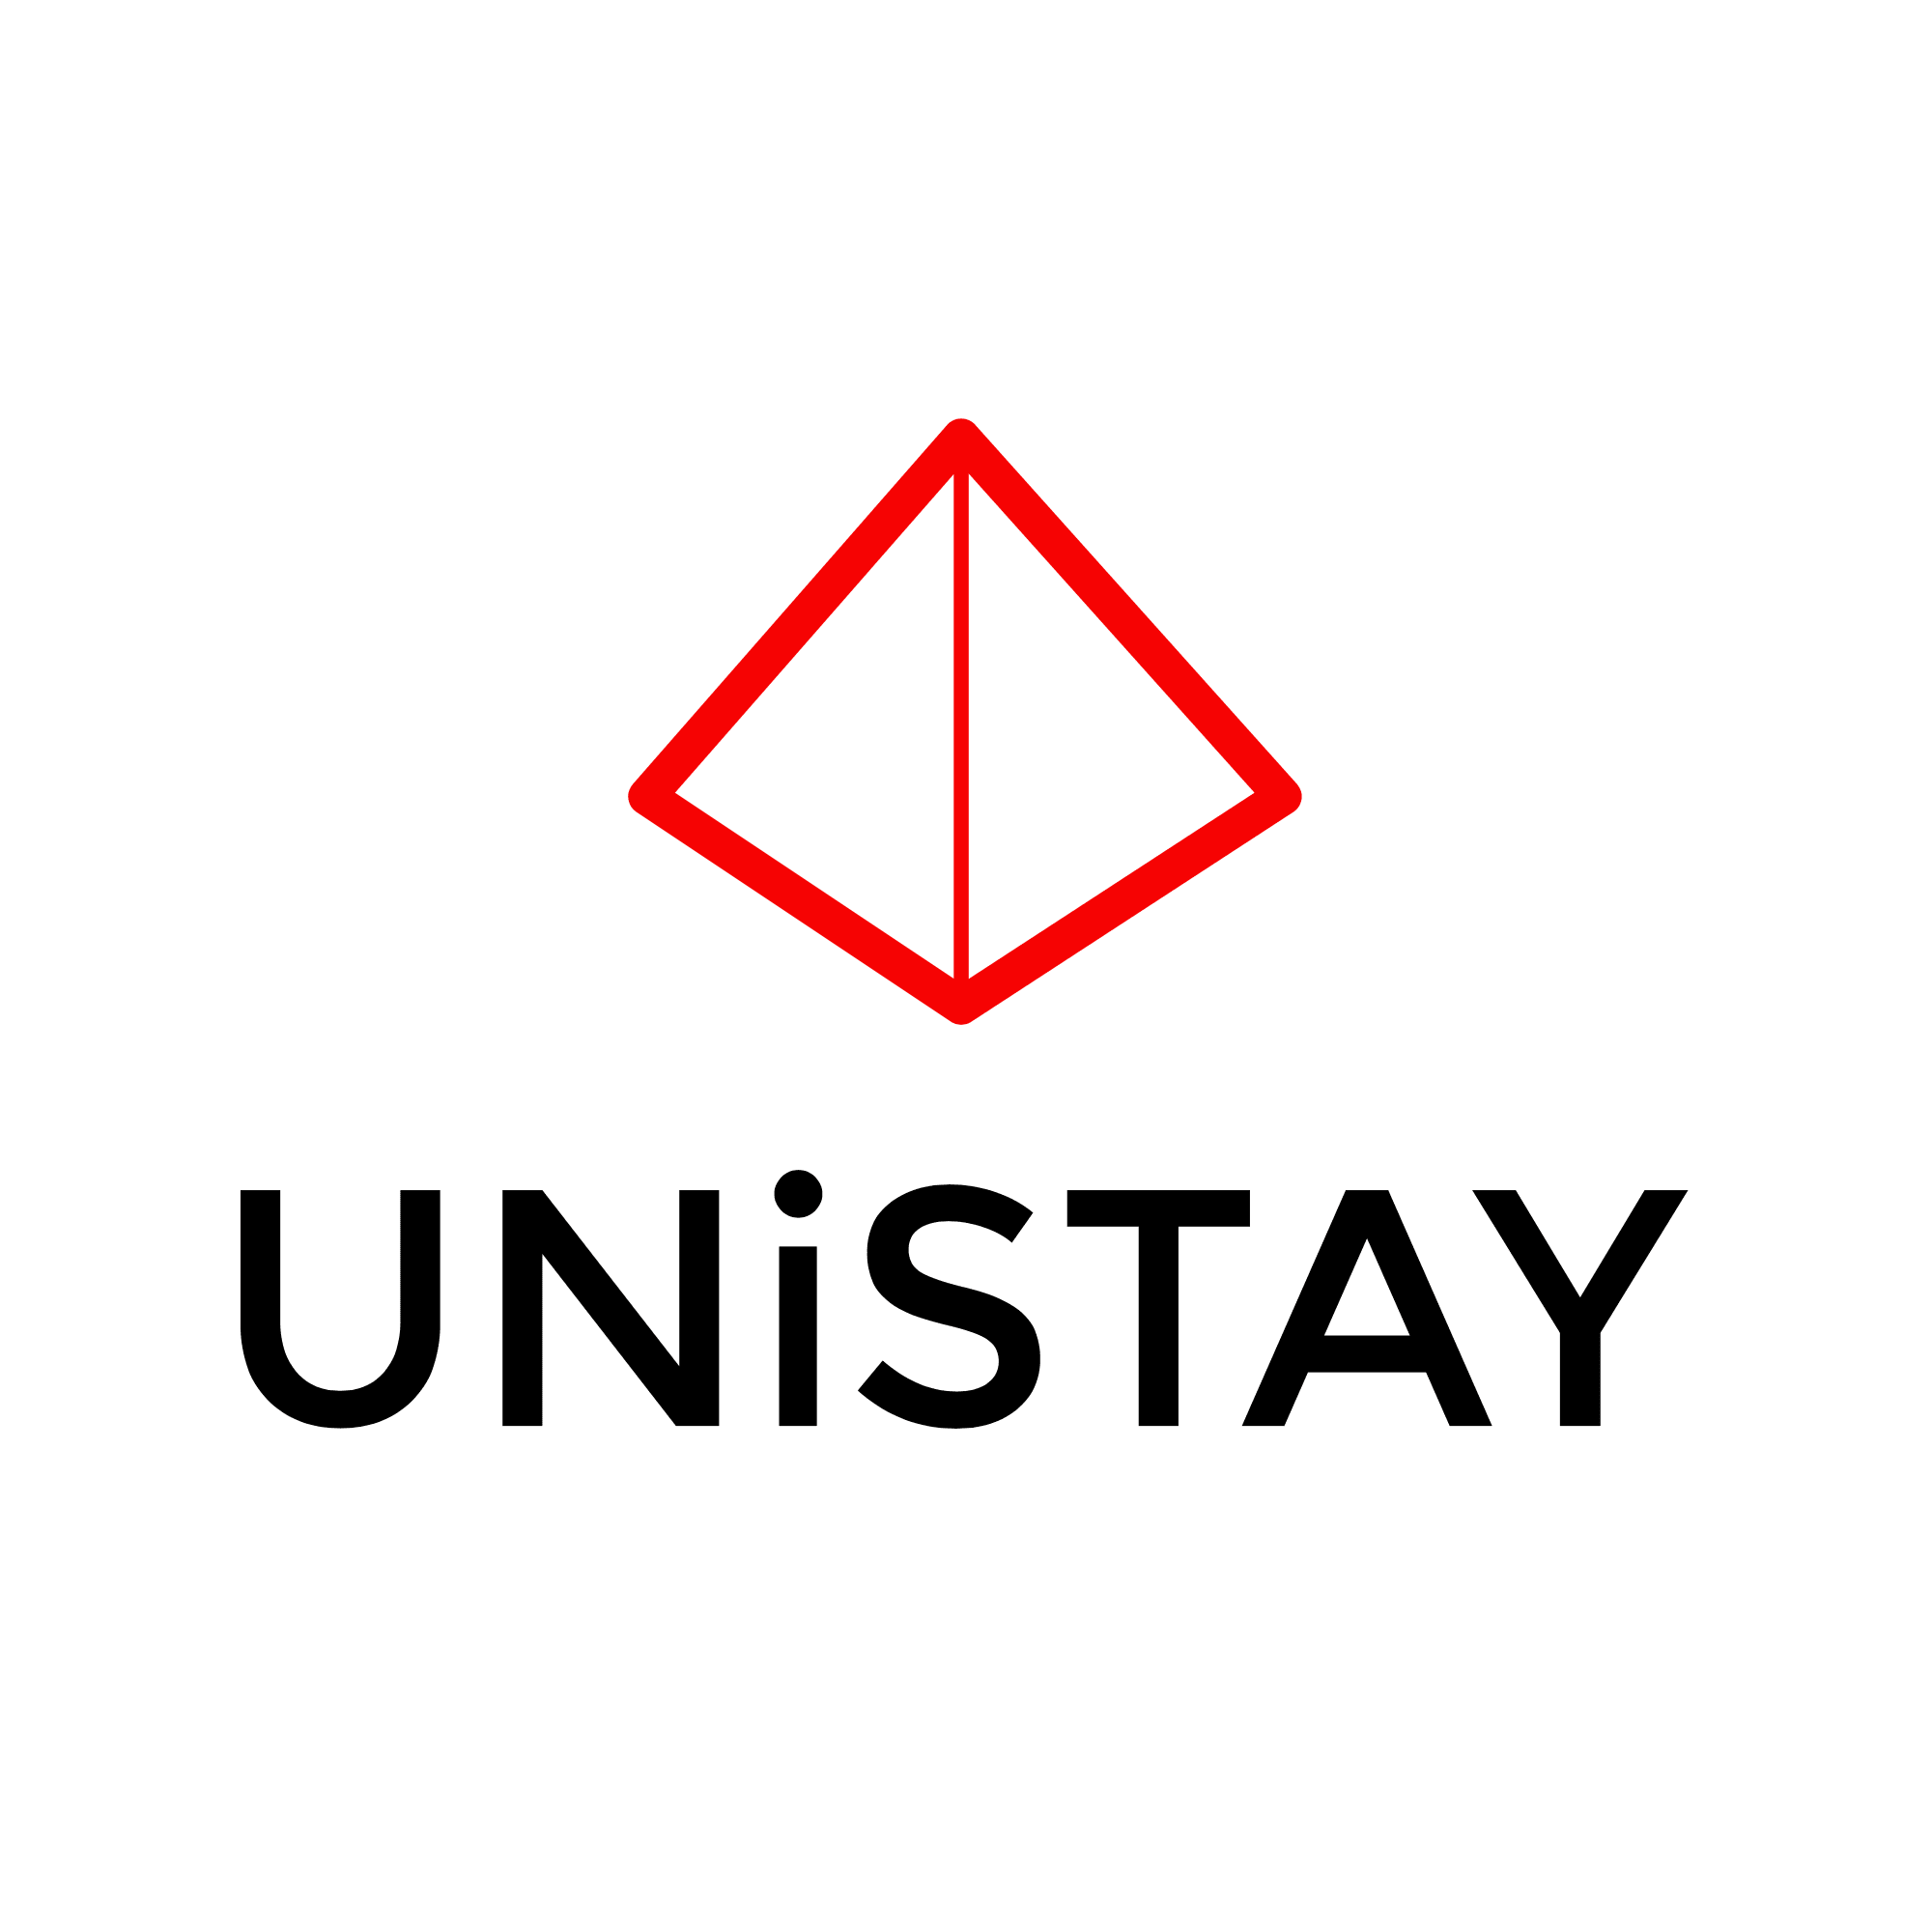 Unistay